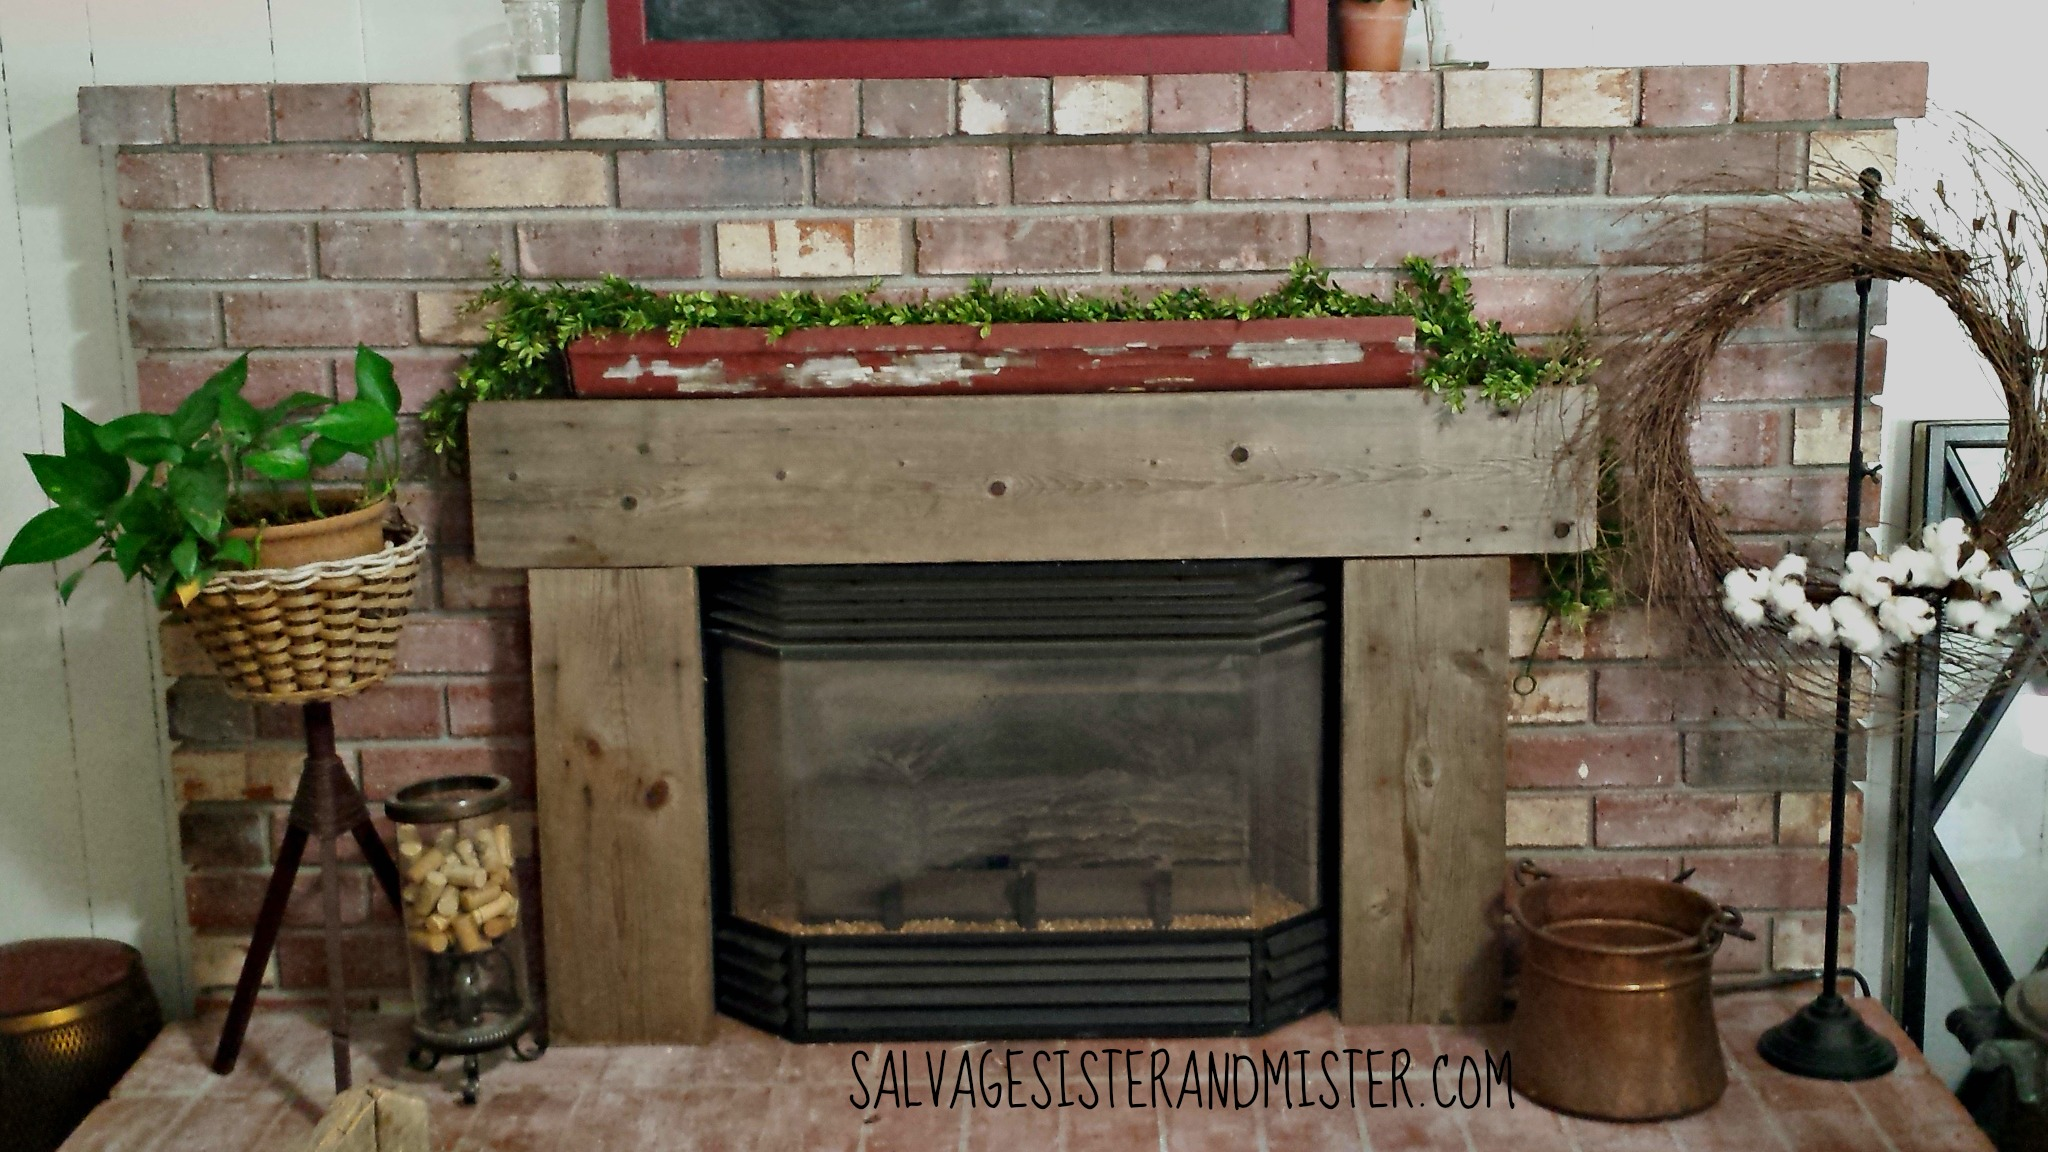 our salvaged wood projects salvage sister and mister